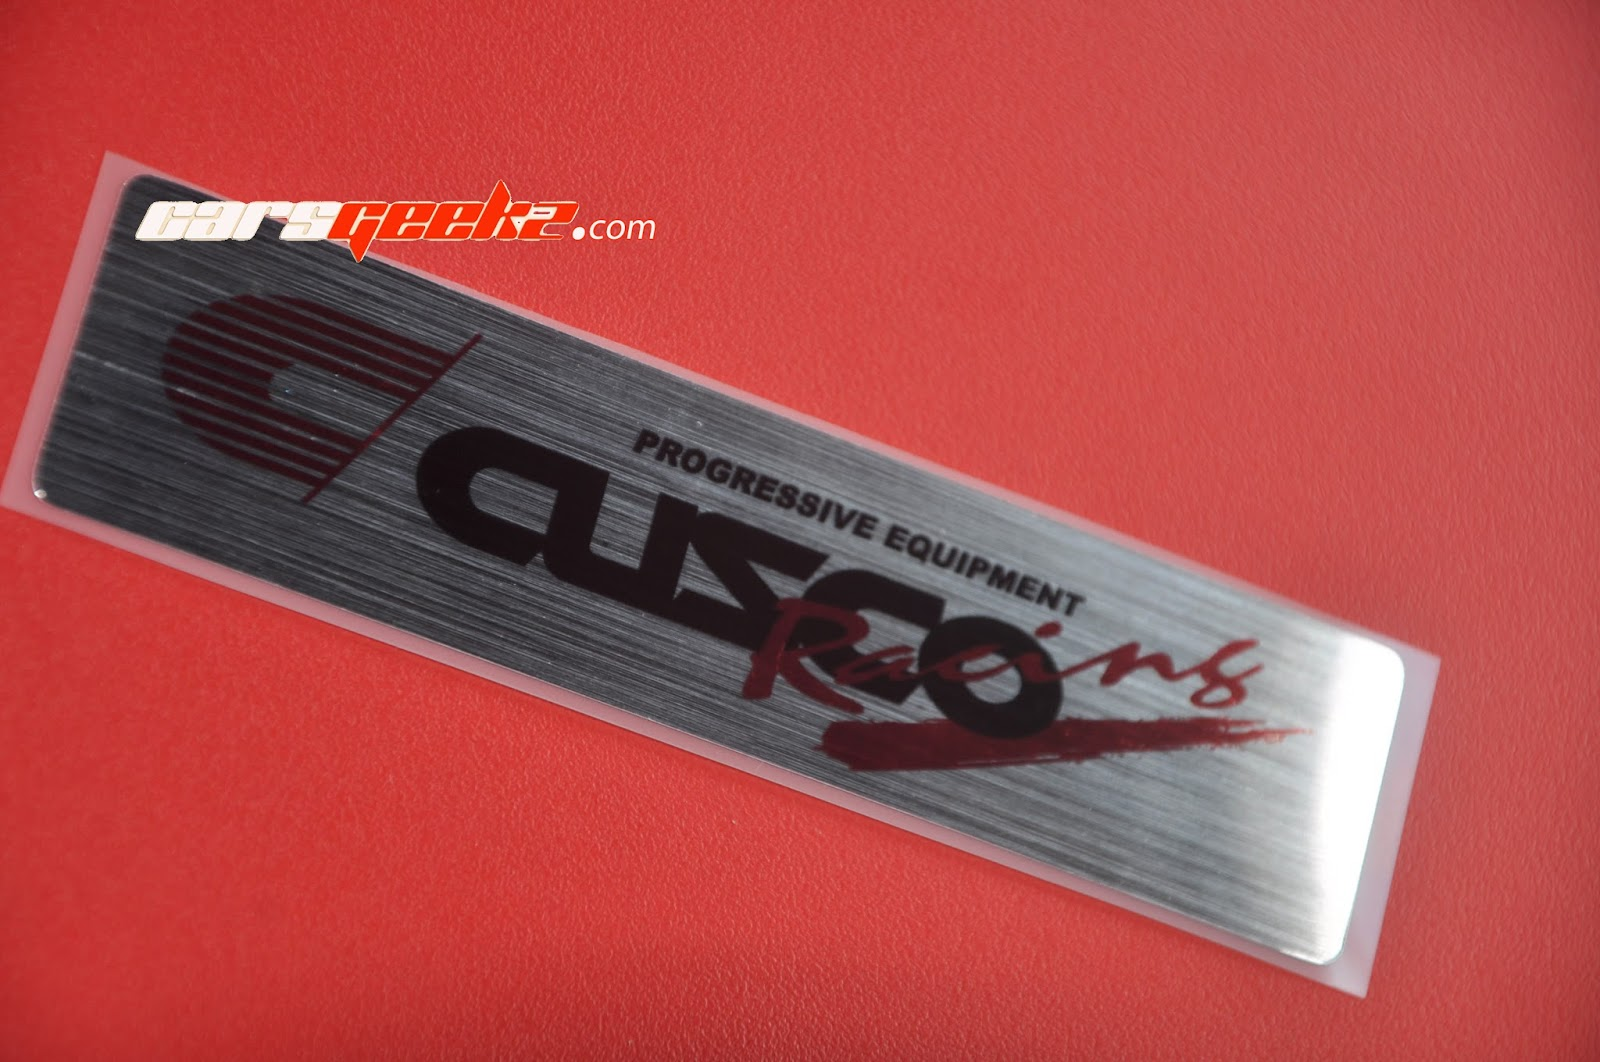 Cusco Racing Progresive Equipment Chrome Sticker Silver Brush decals